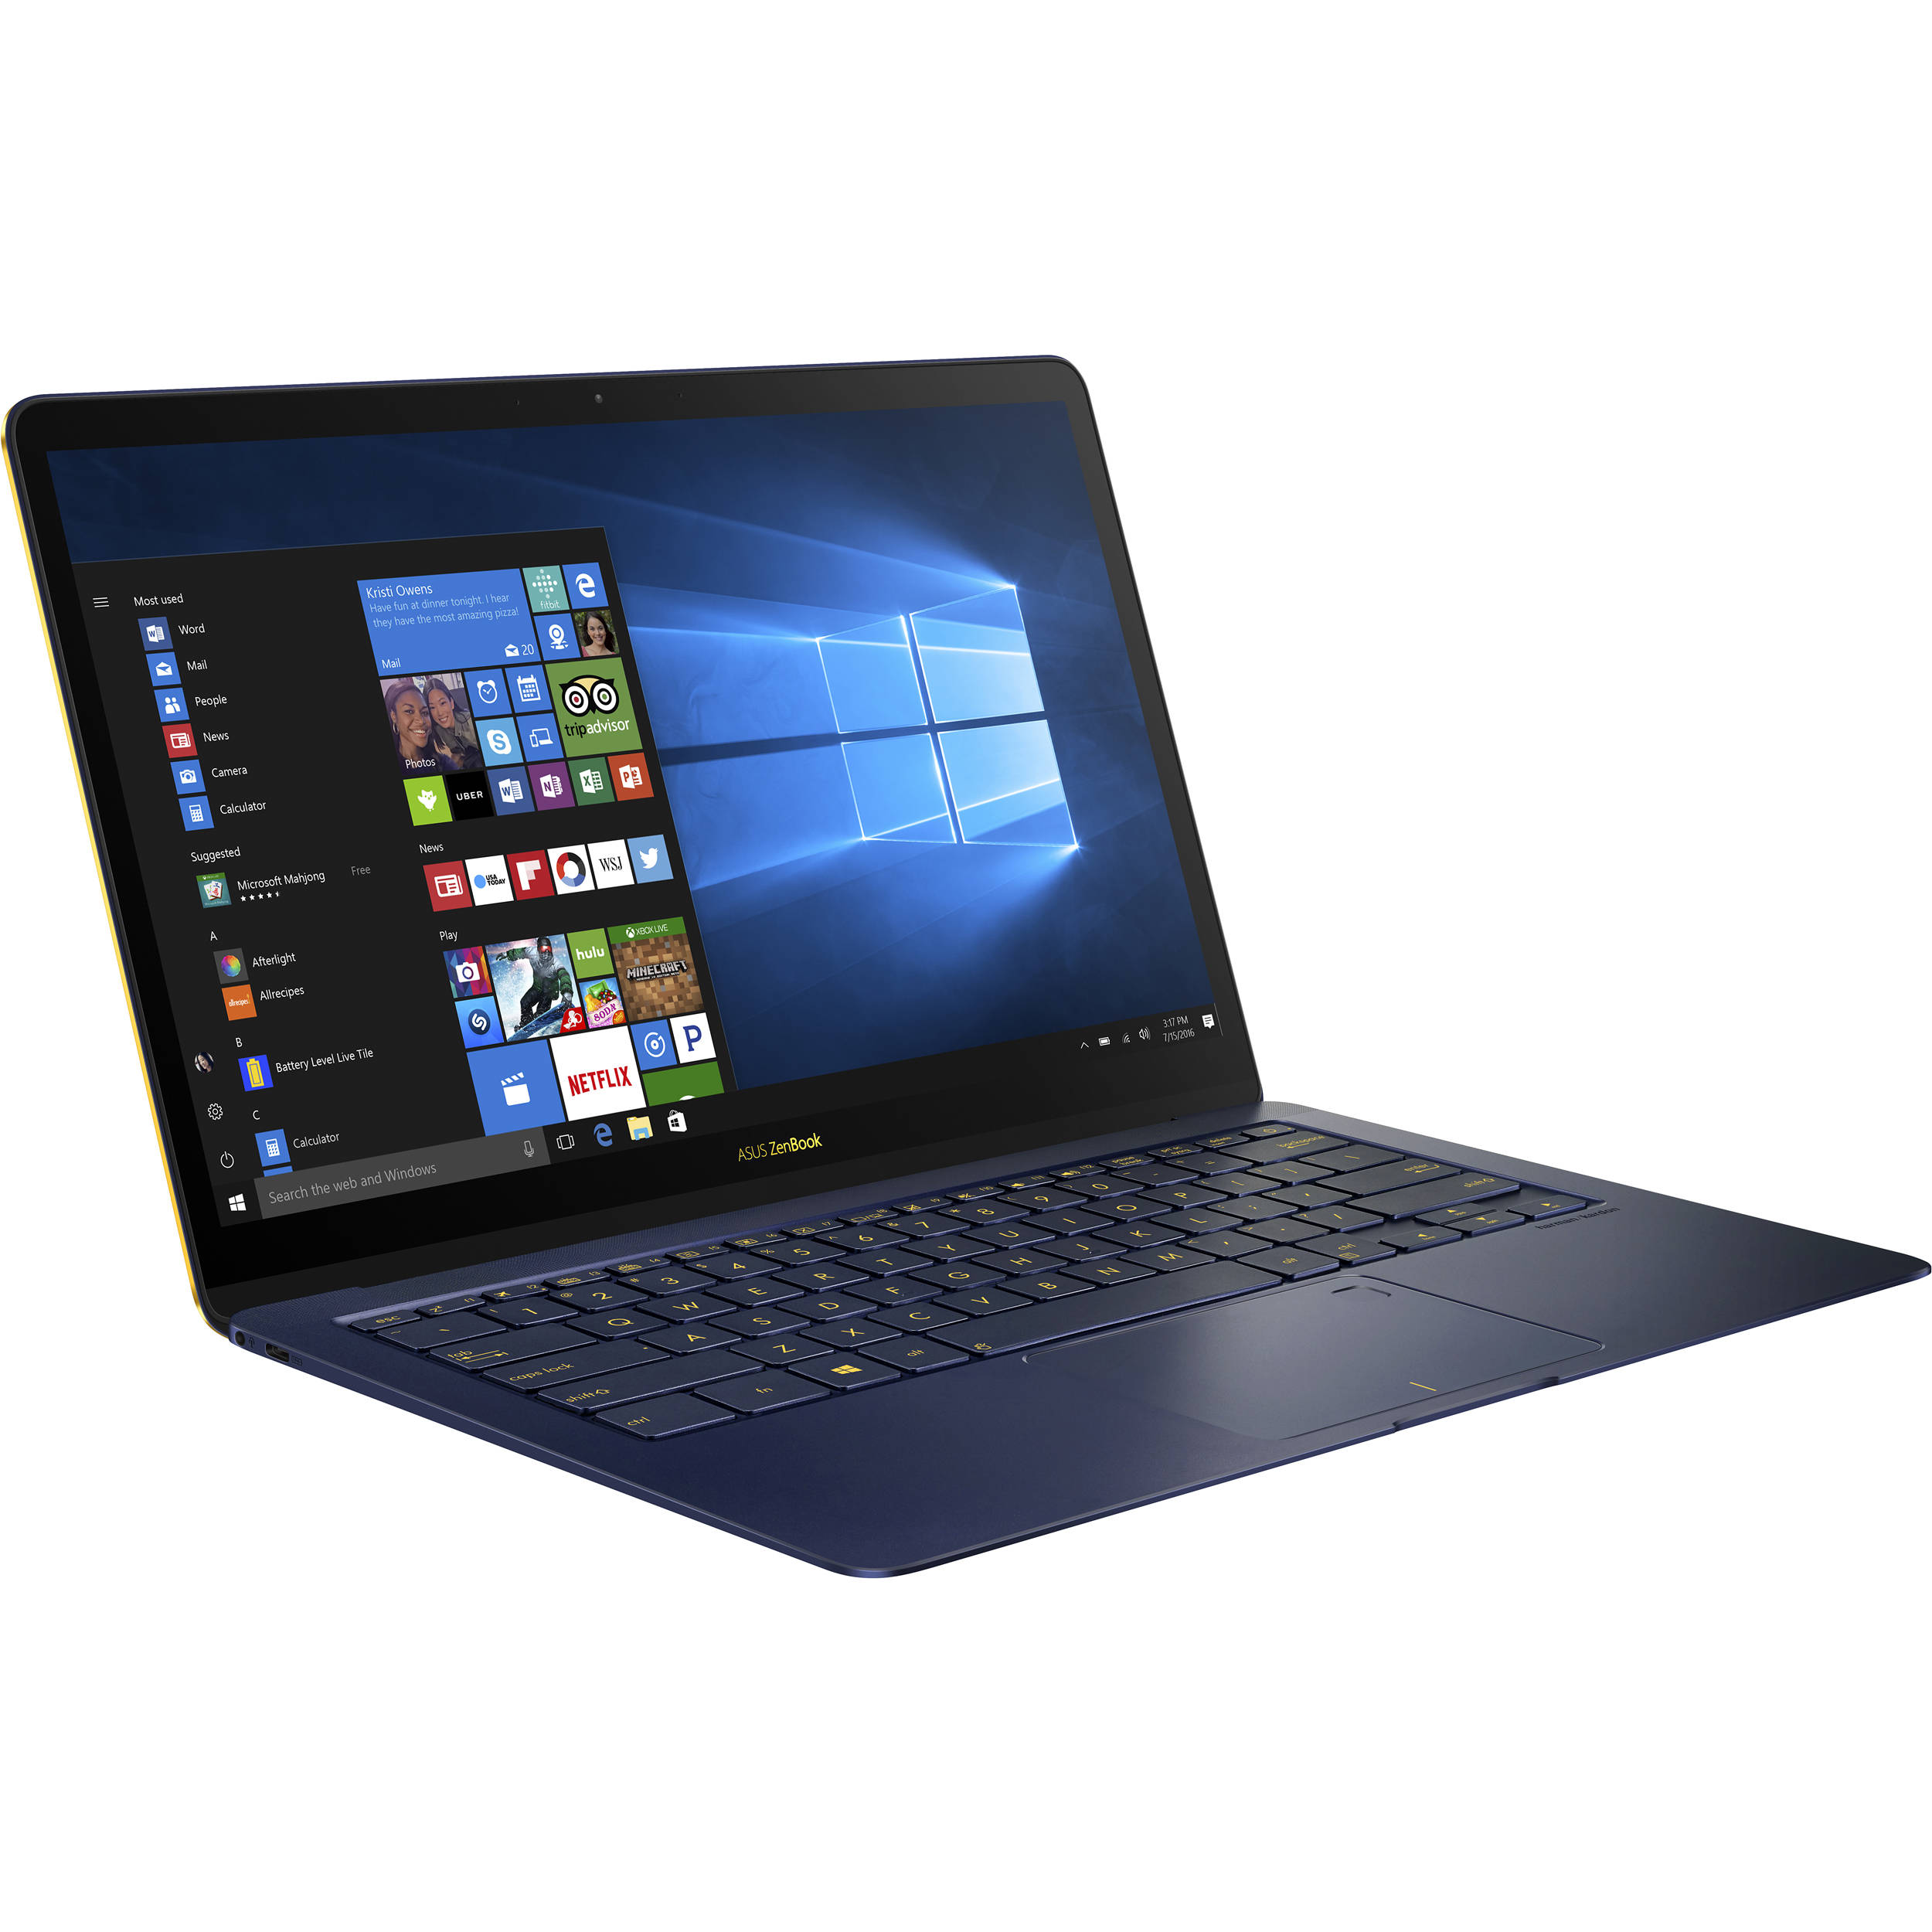 Asus Zenbook 3 Boot from USB